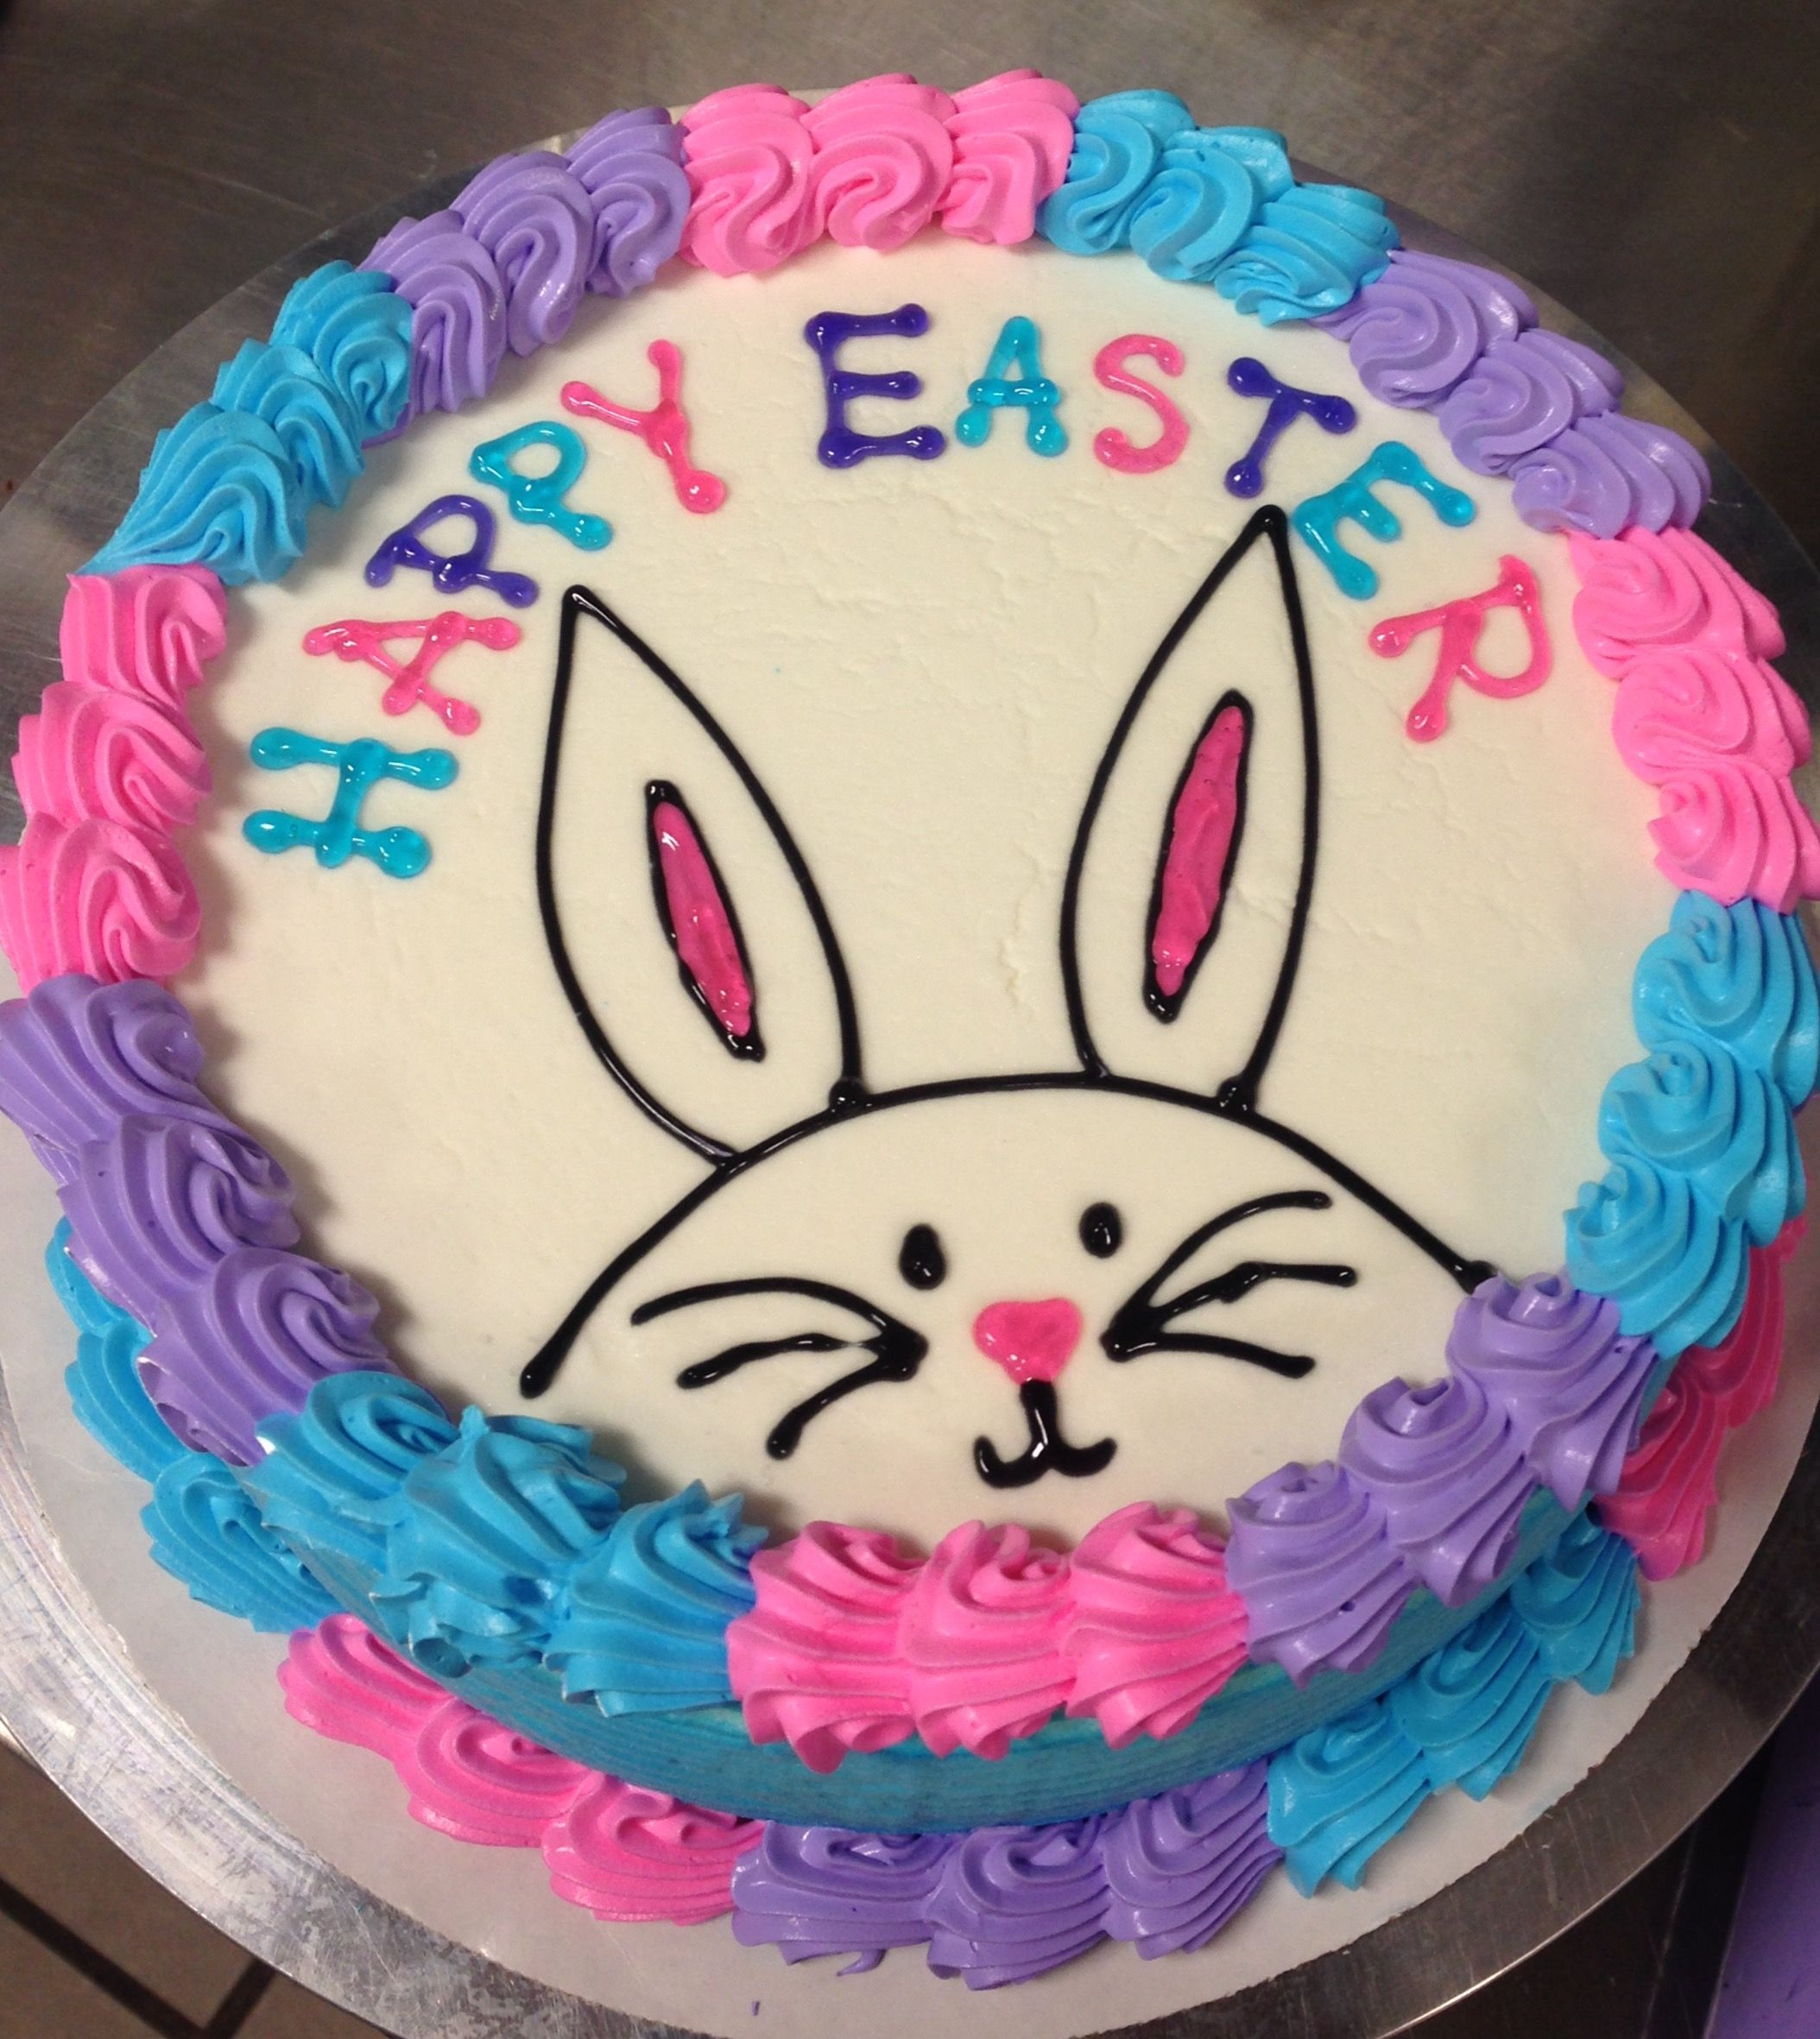 Simple Bunny Cake But Use Pastel Colors Maybe Outline Bunny In Chocolate So It S Brown Rather Than Blac Easter Cake Decorating Bunny Cake Easter Cake Designs